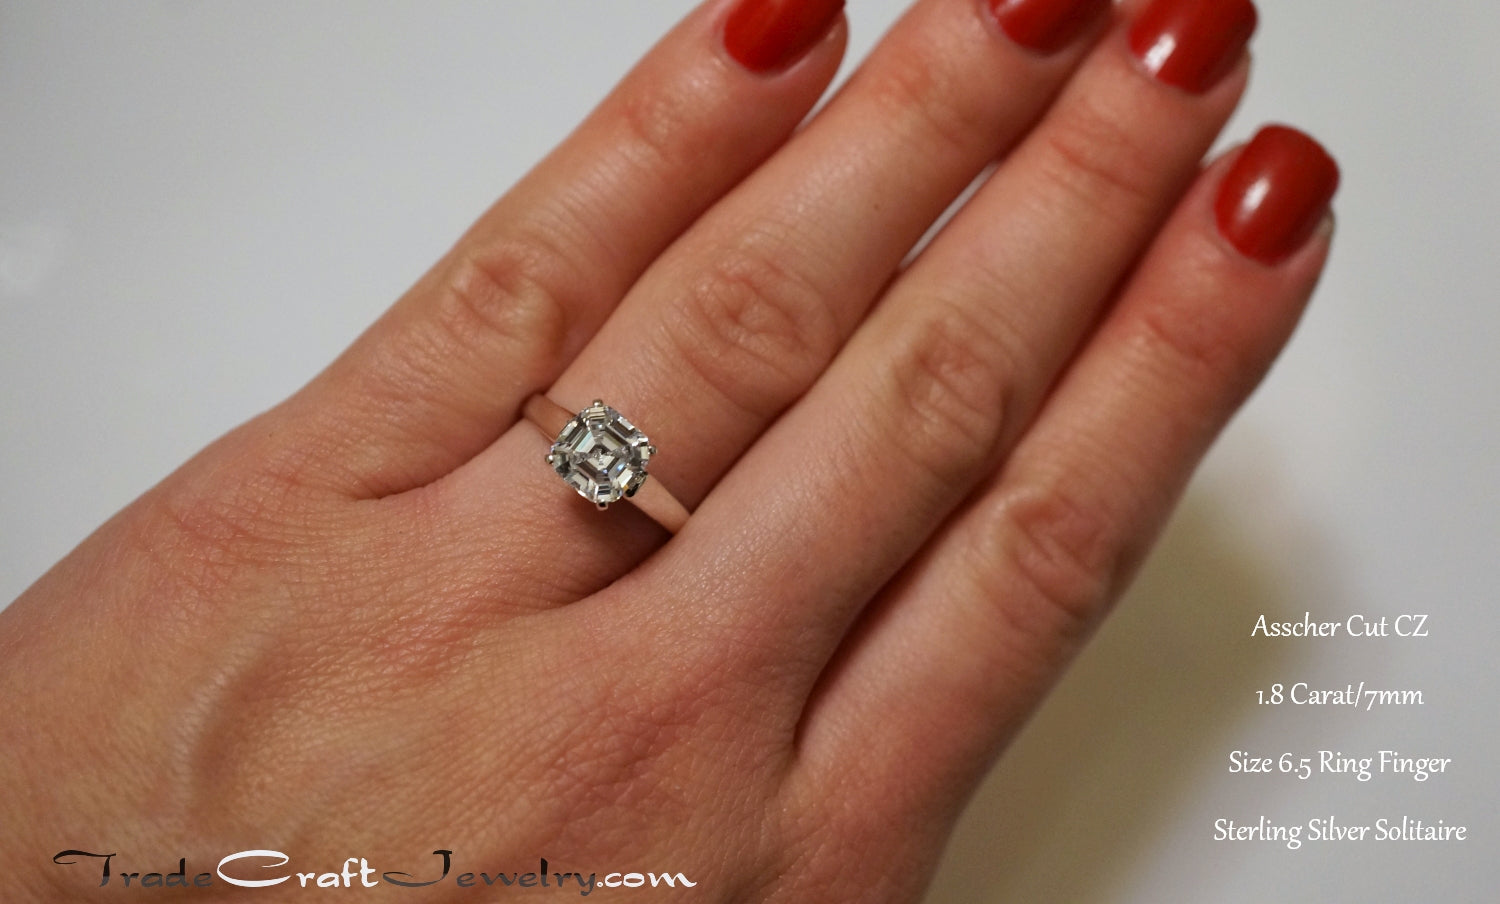 Sterling Silver Cz Wedding Rings 016 - Sterling Silver Cz Wedding Rings